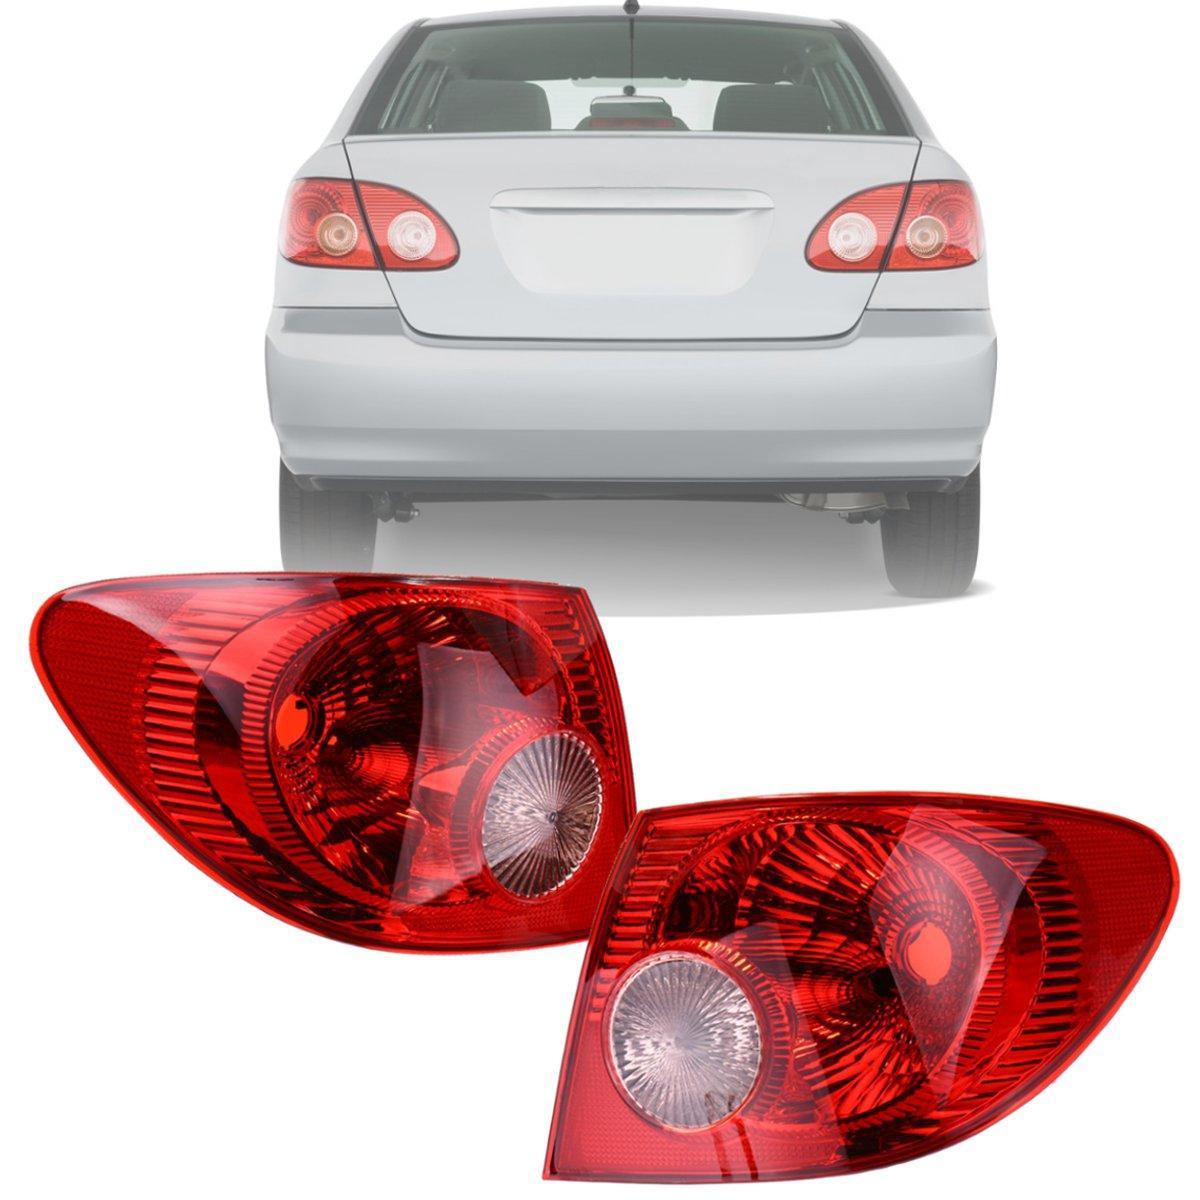 PAIR Fits 2005-2008 Toyota Corolla Outer TAIL LIGHT Rear